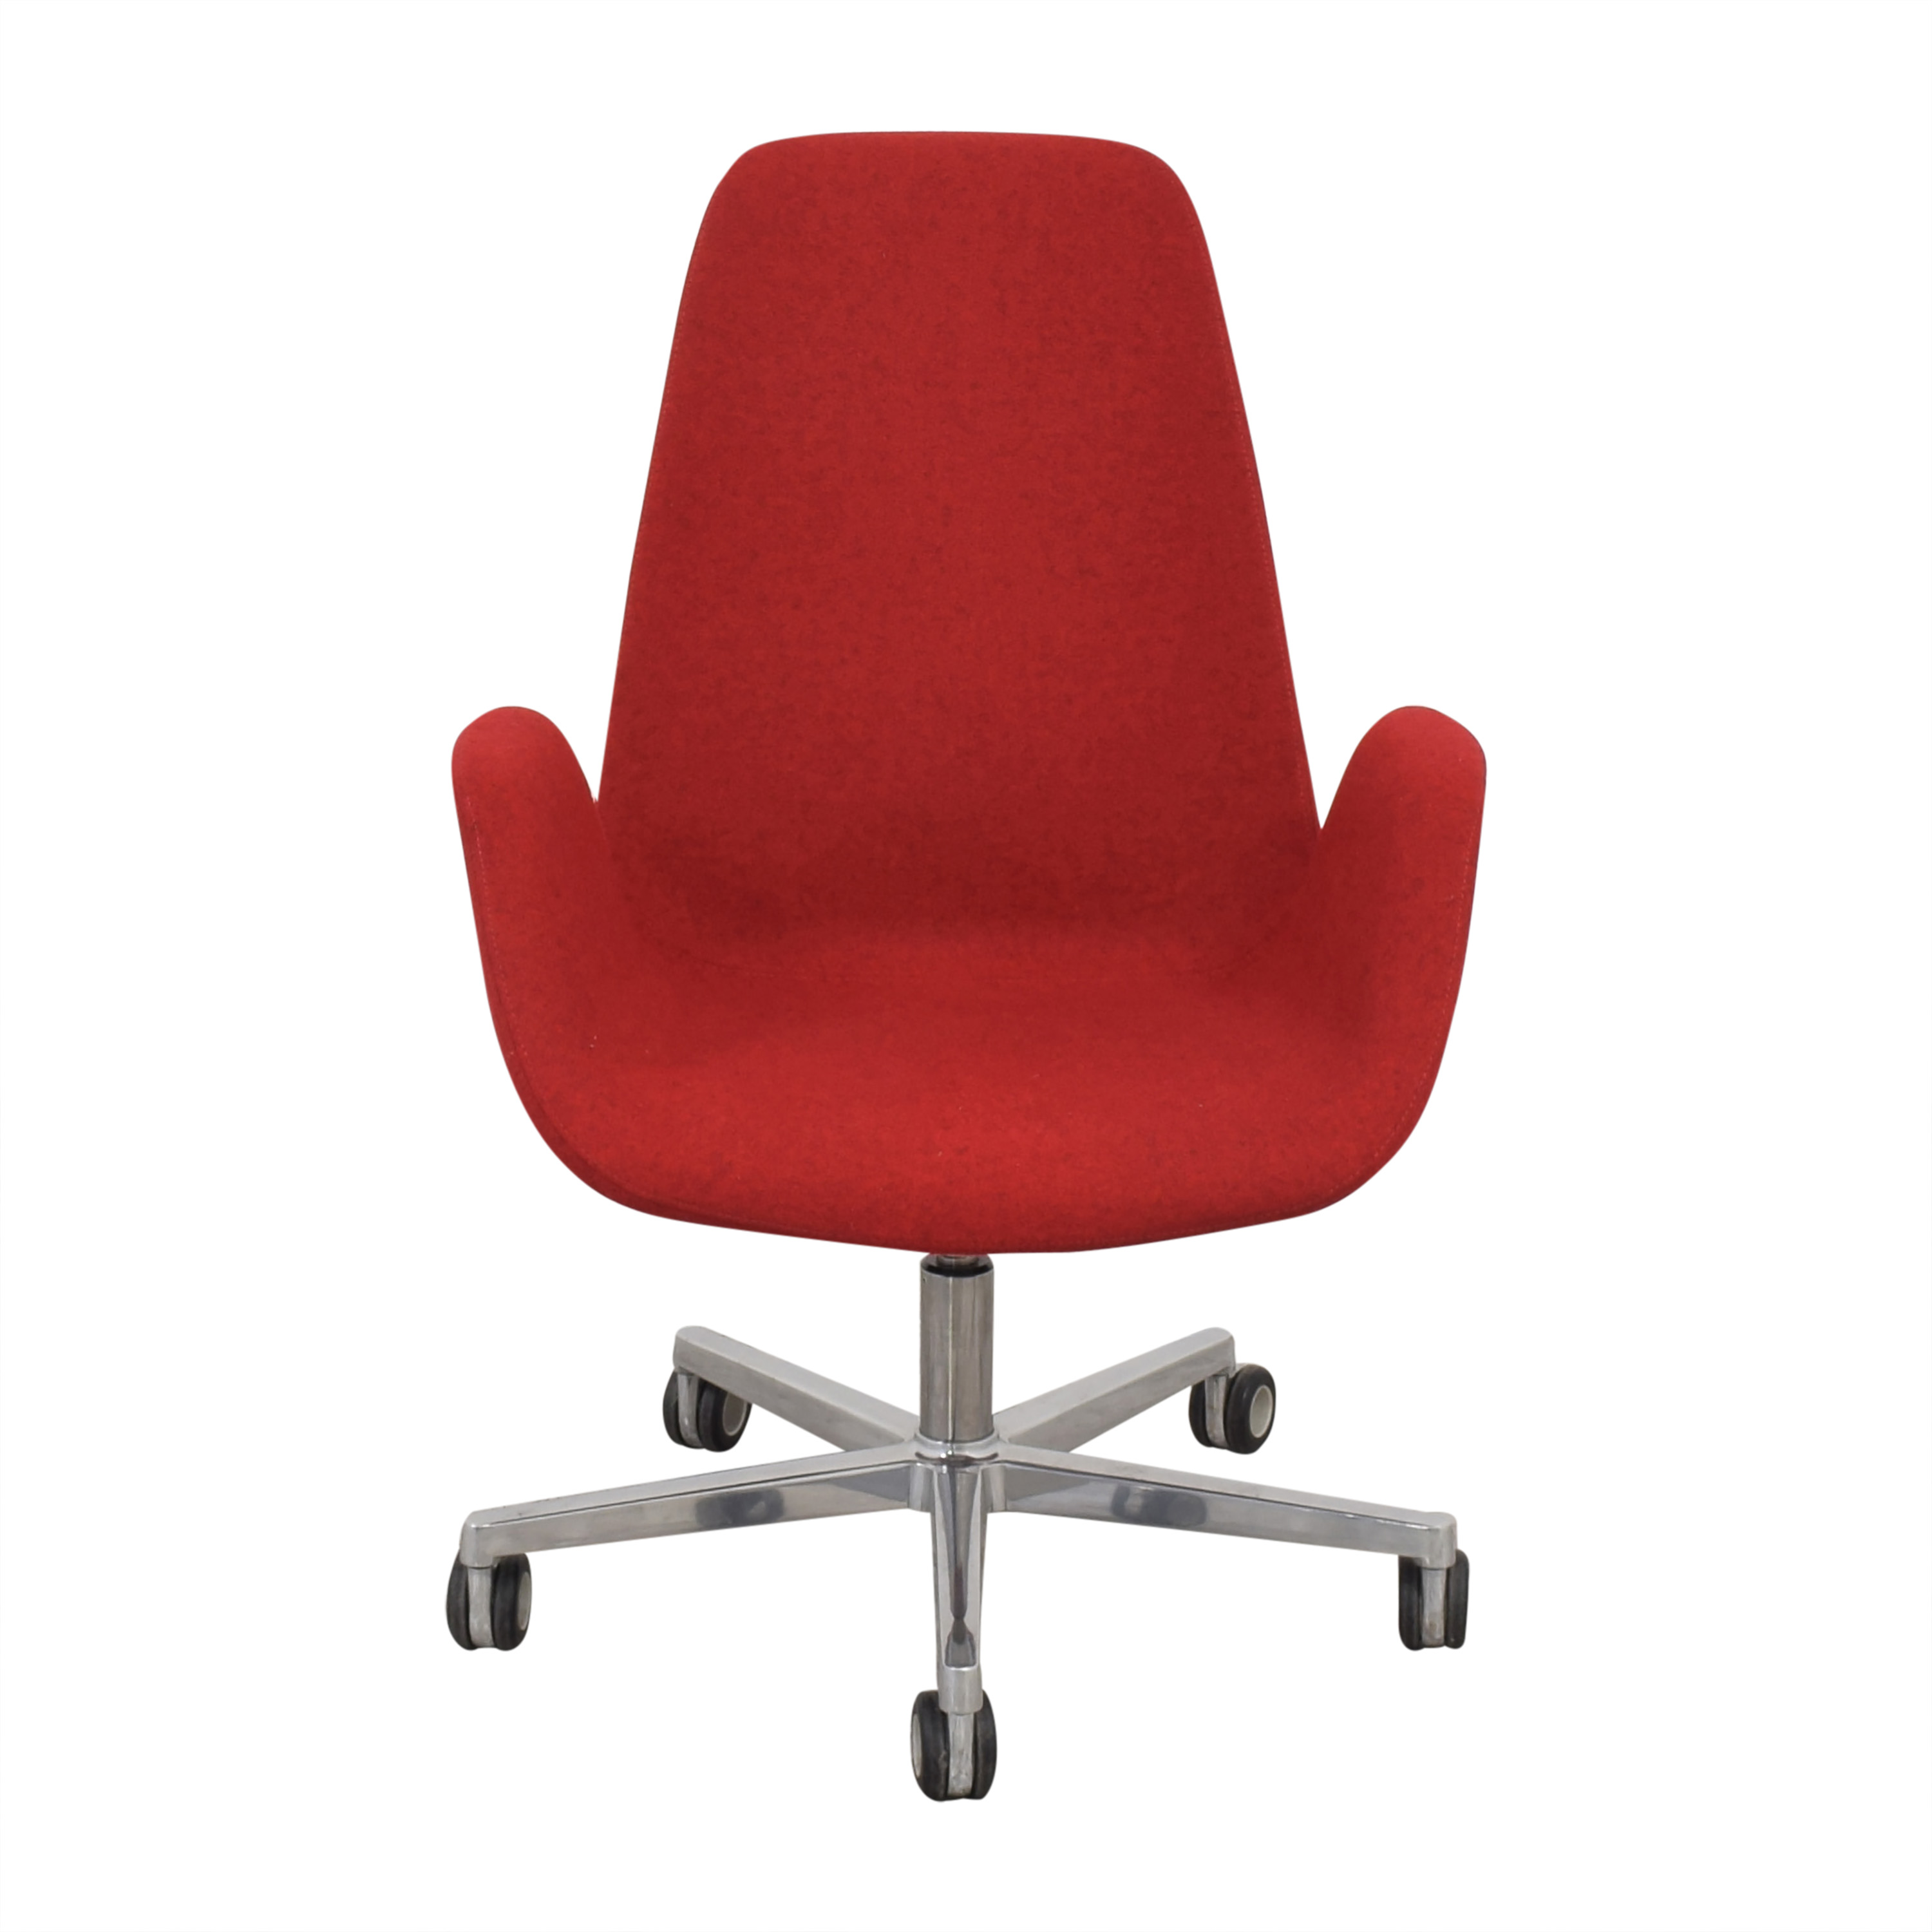 Koleksiyon Koleksiyon Halia High Back Office Chair nj